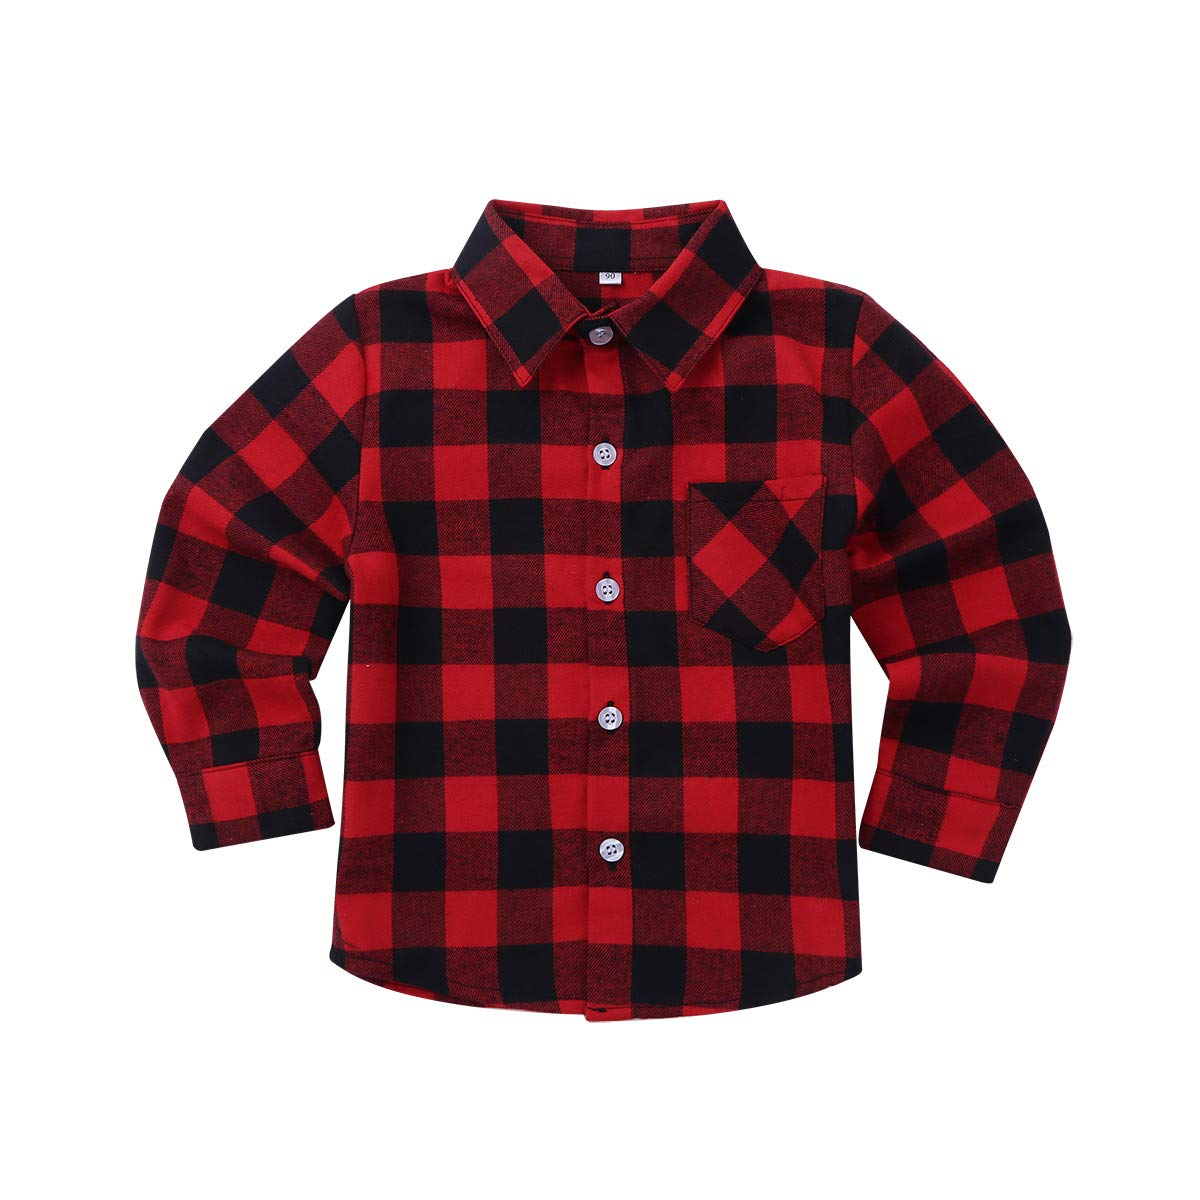 iiniim Children Boys' Girls' Long Sleeve Button Down Plaid Cotton Shirt Infant Baby Shirt Tops Blouse